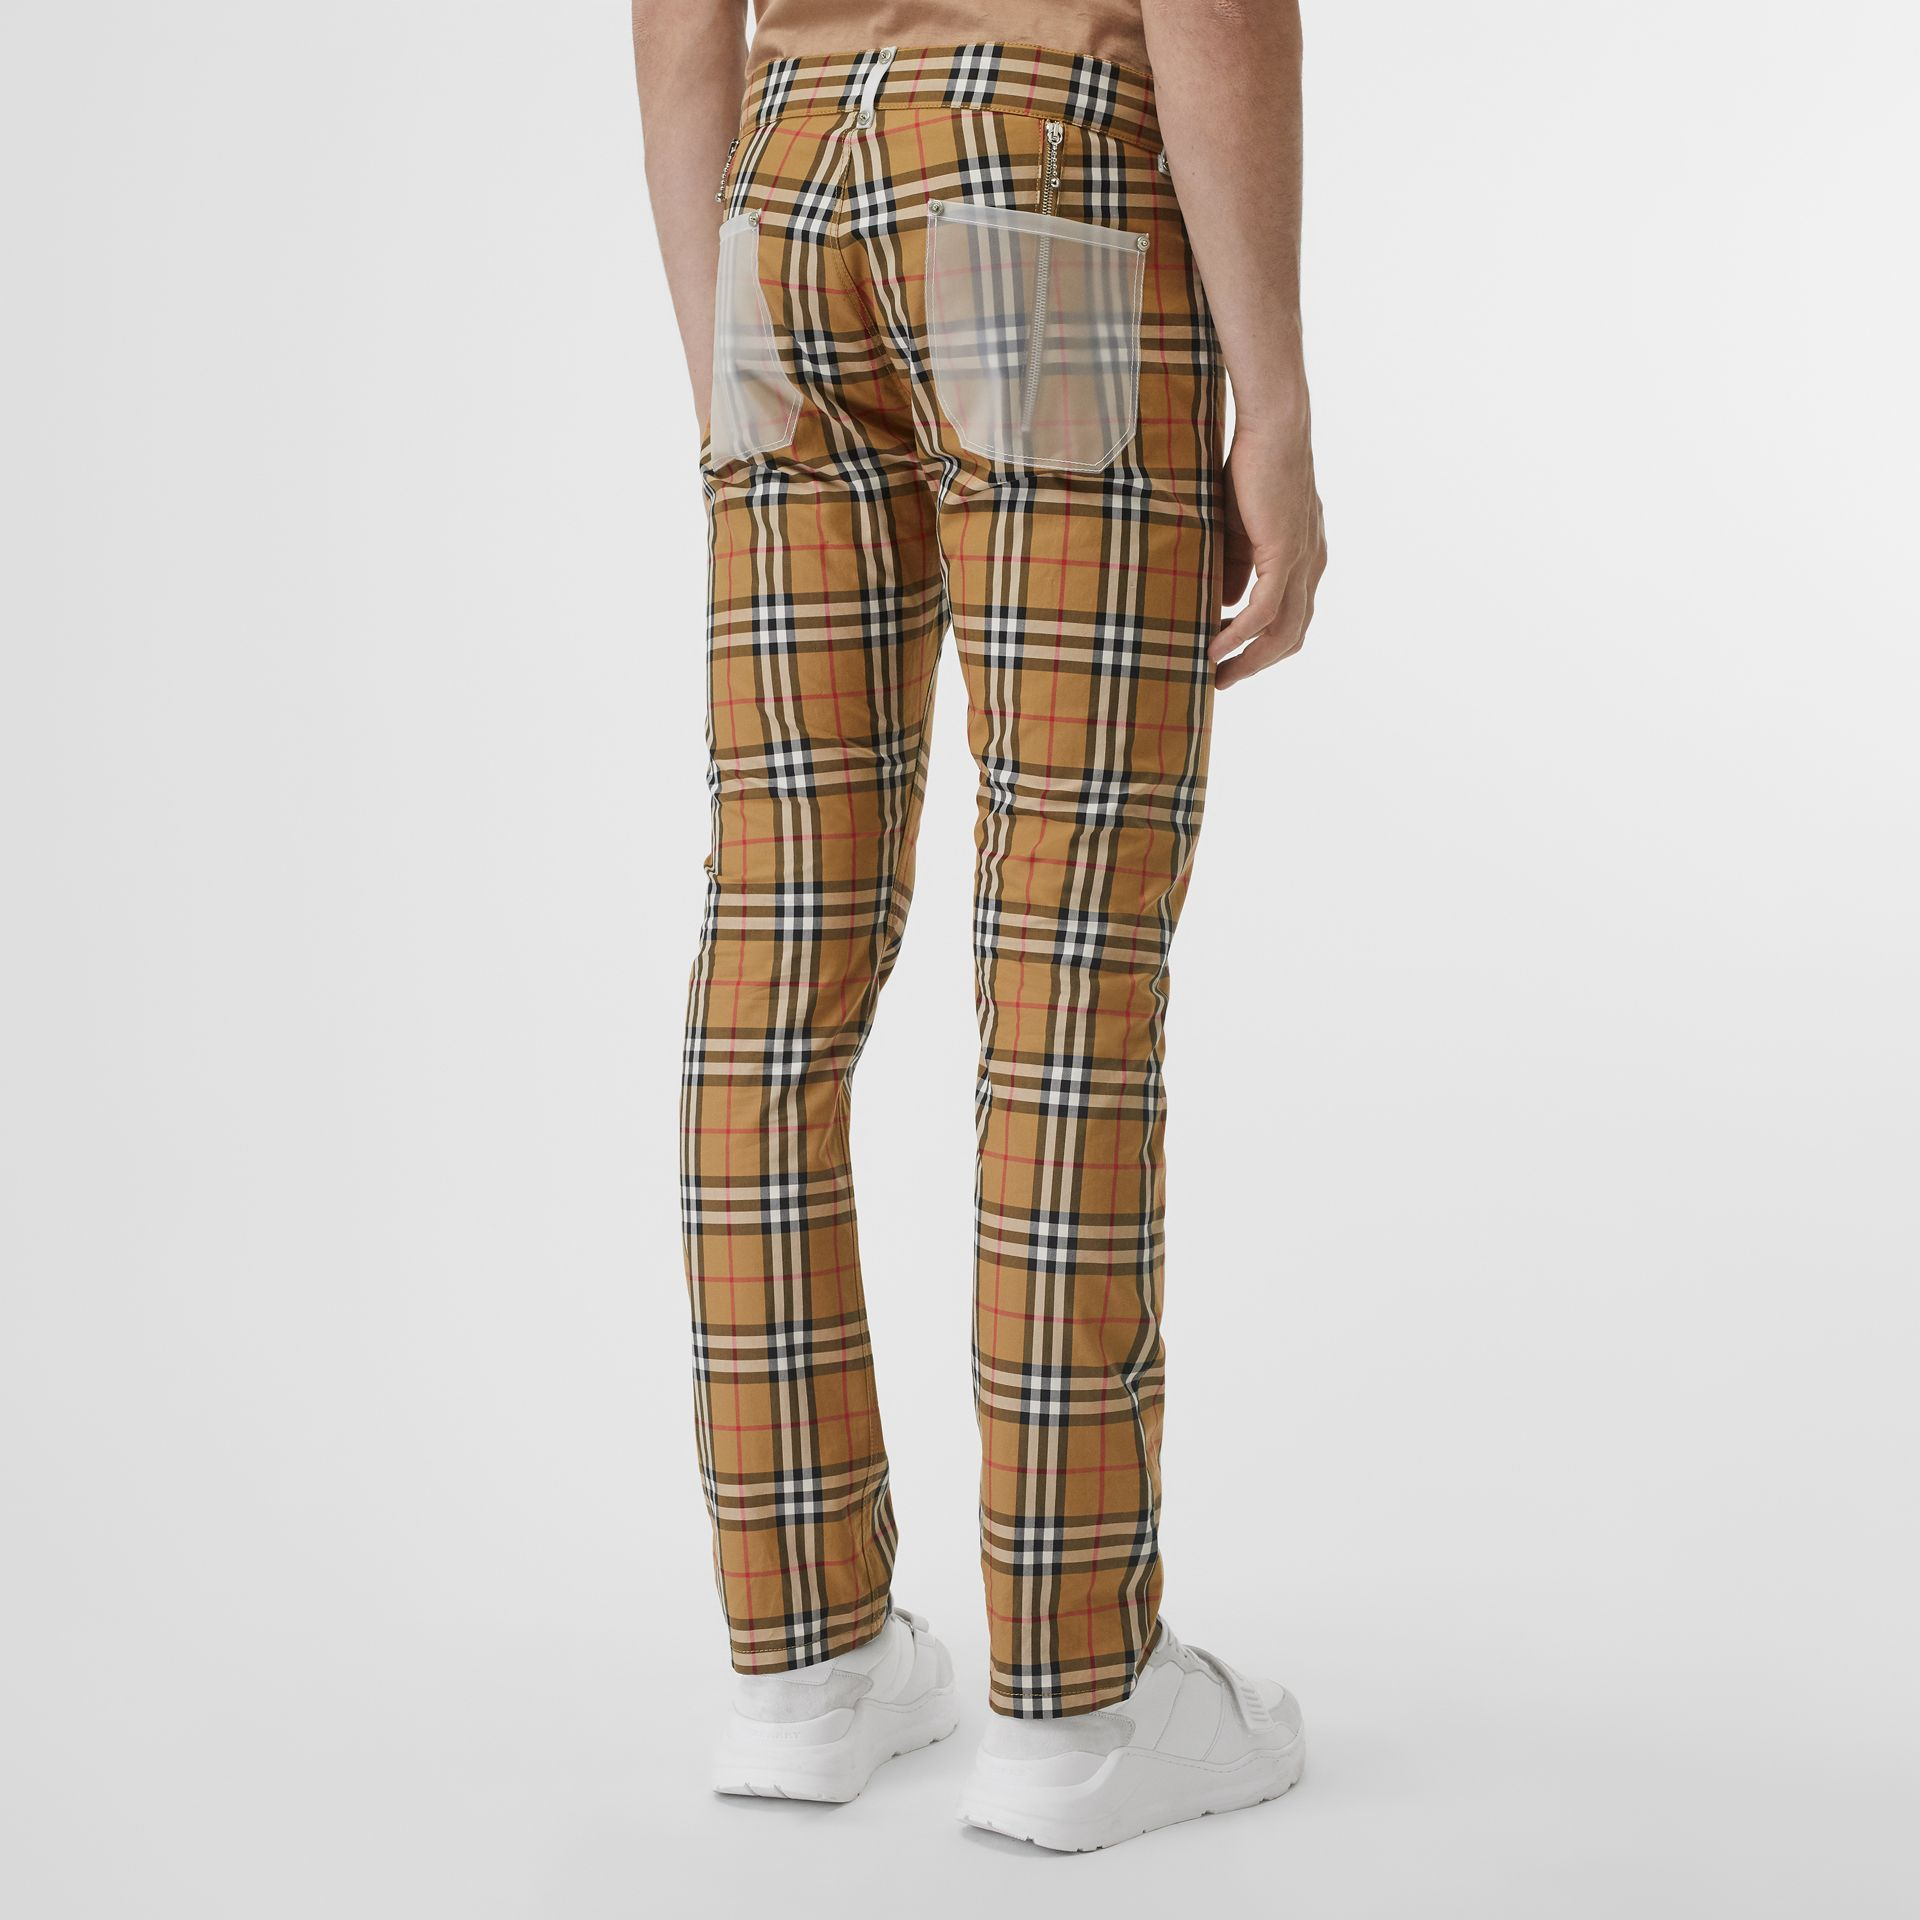 Pantalon en coton à motif Vintage check (Jaune Antique) - Homme | Burberry - photo de la galerie 2